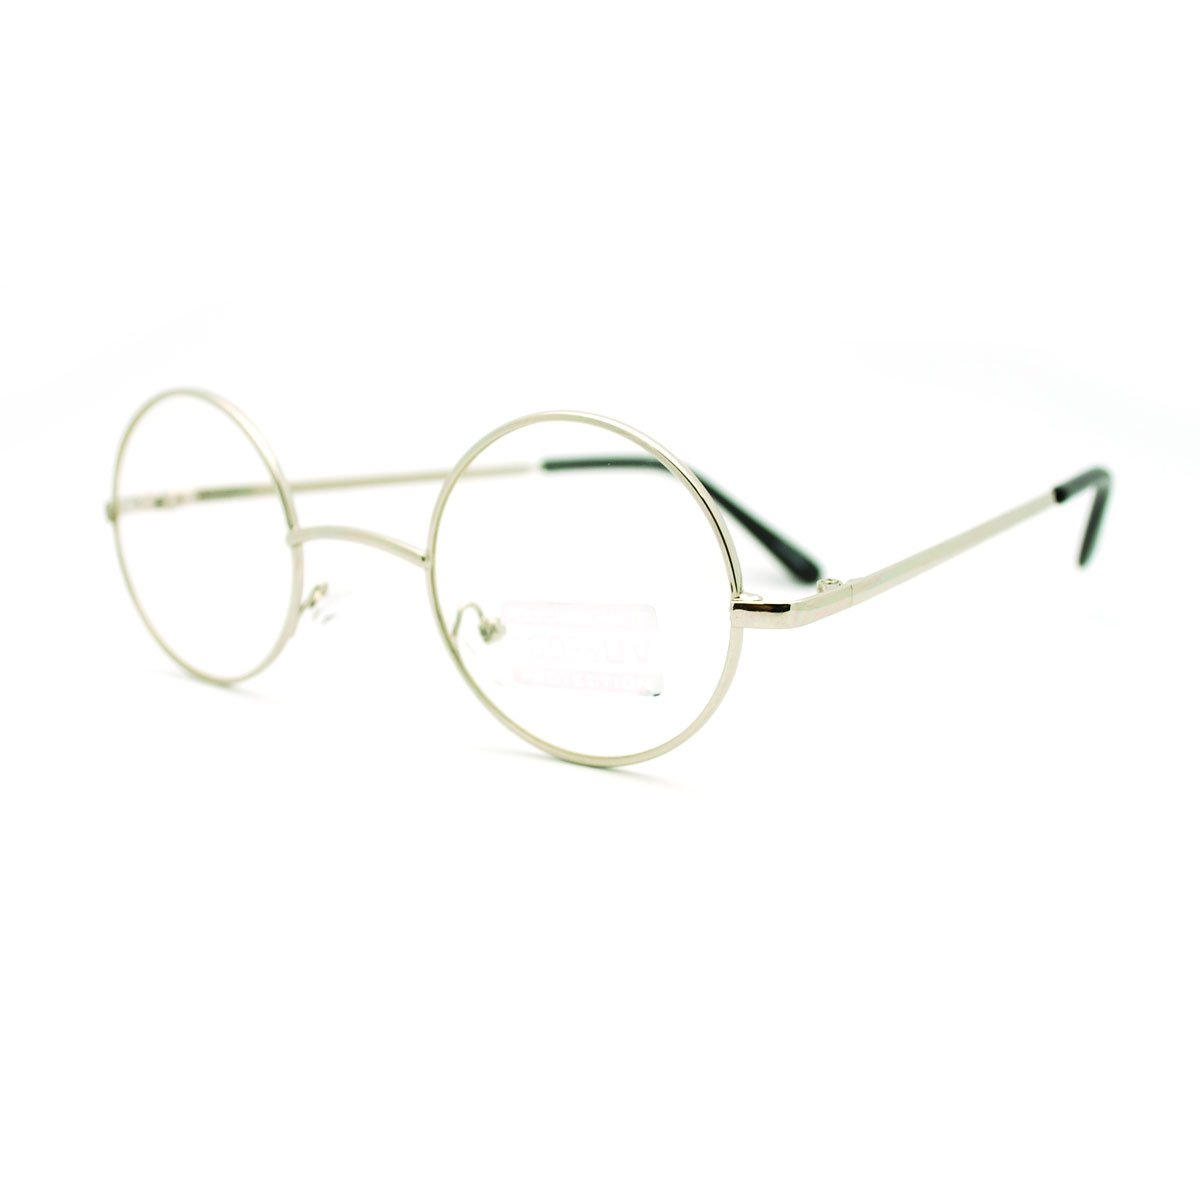 40ae8745b1d Round Circle Clear Lens Eyeglasses Small Size Thin Frame Unisex Glasses